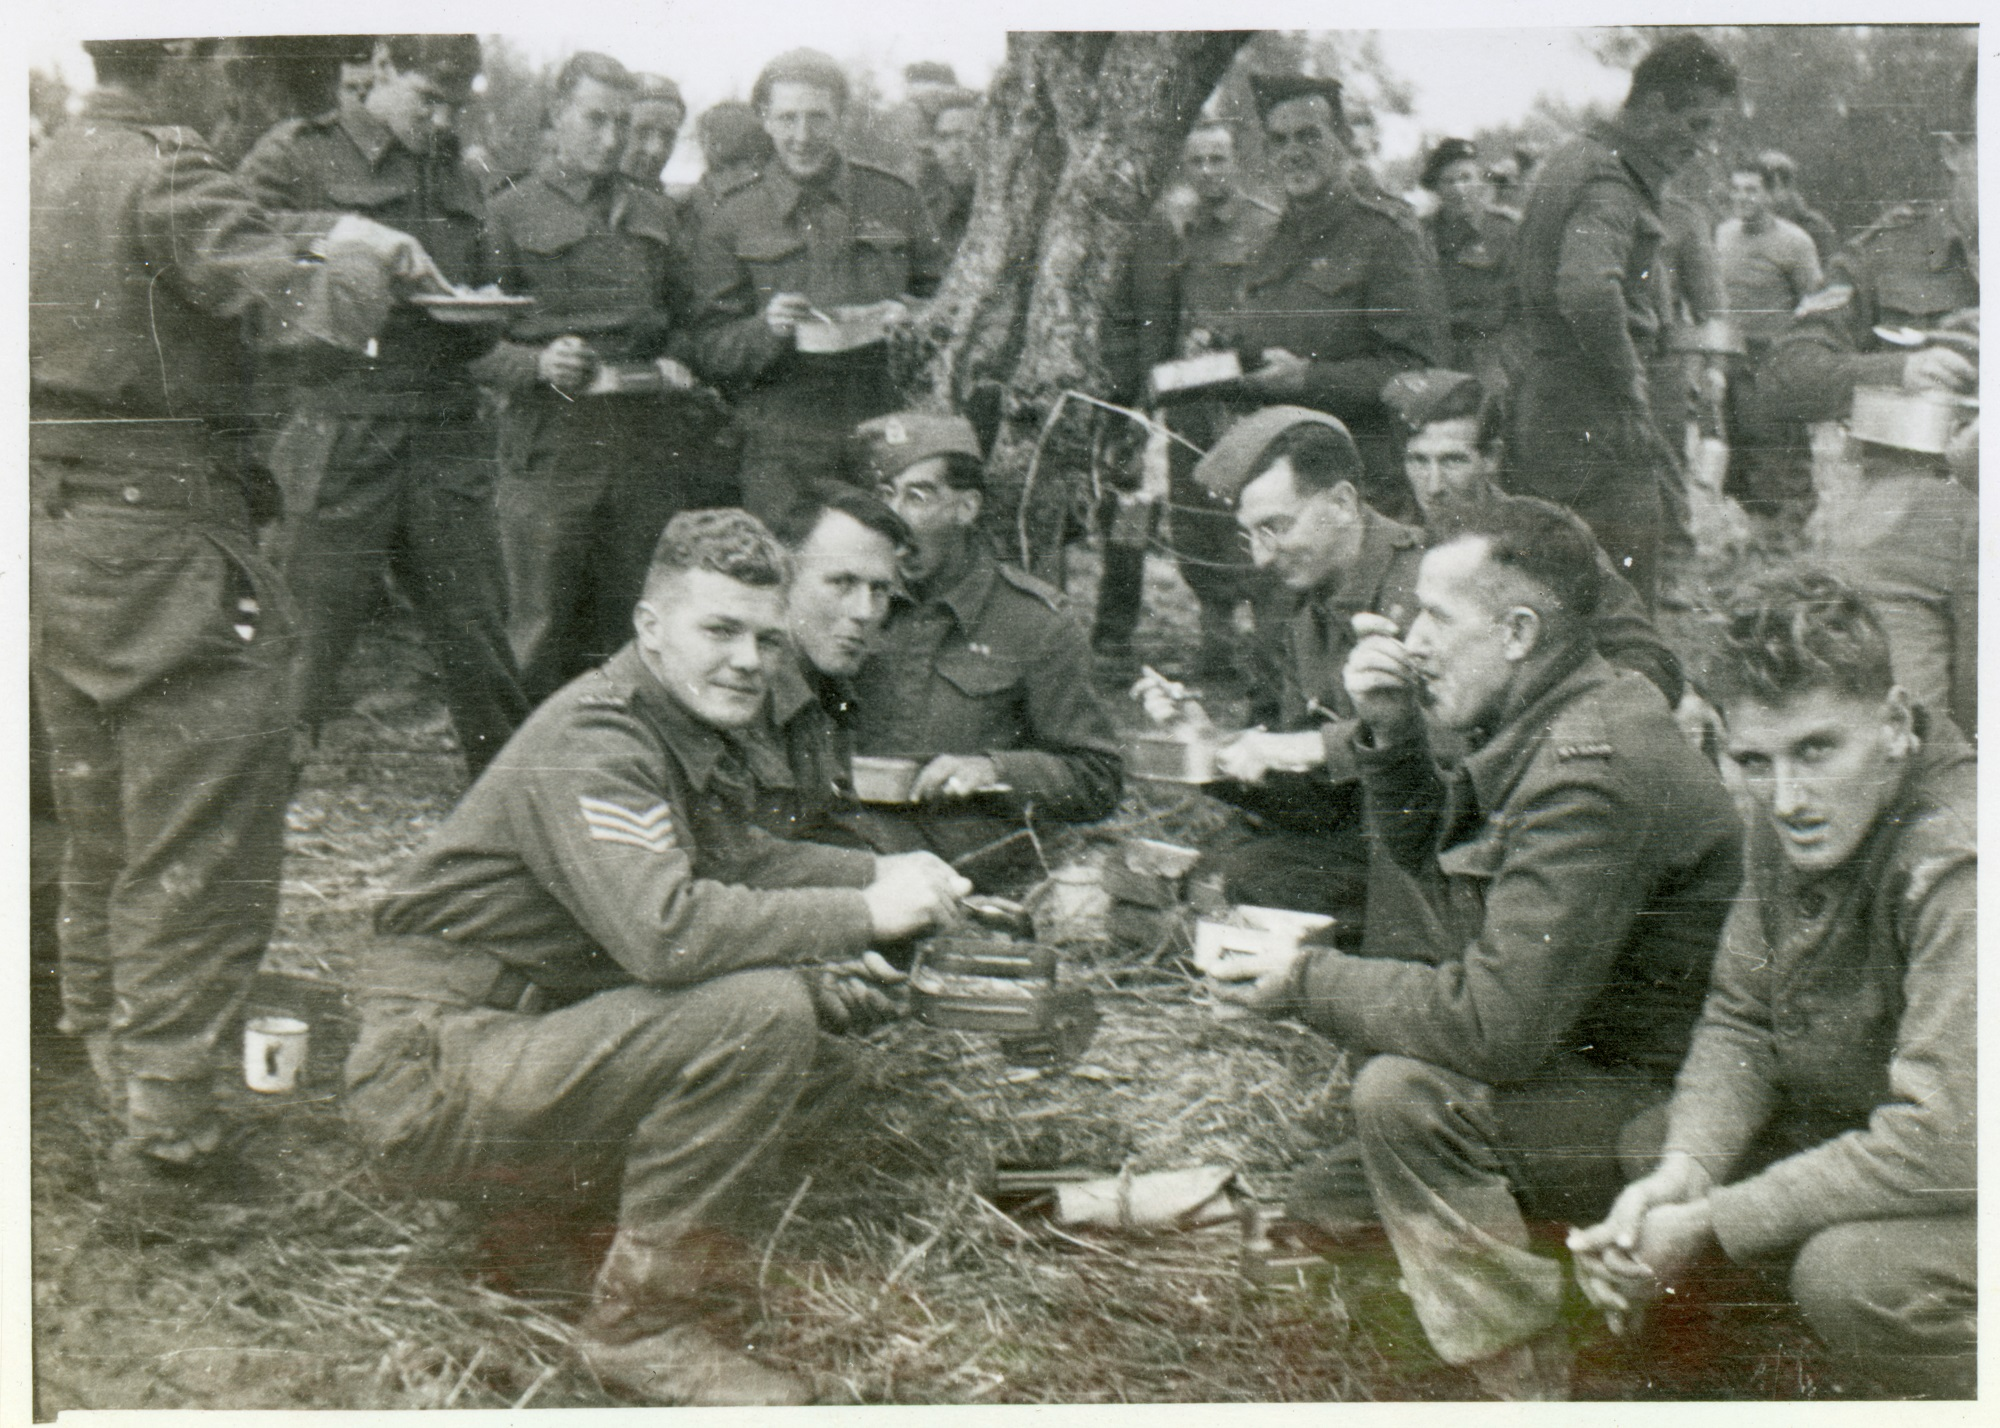 image depicts historical scene of world war two soldiers at ease, crouched in grass while eating tinned food for Christmas dinner.